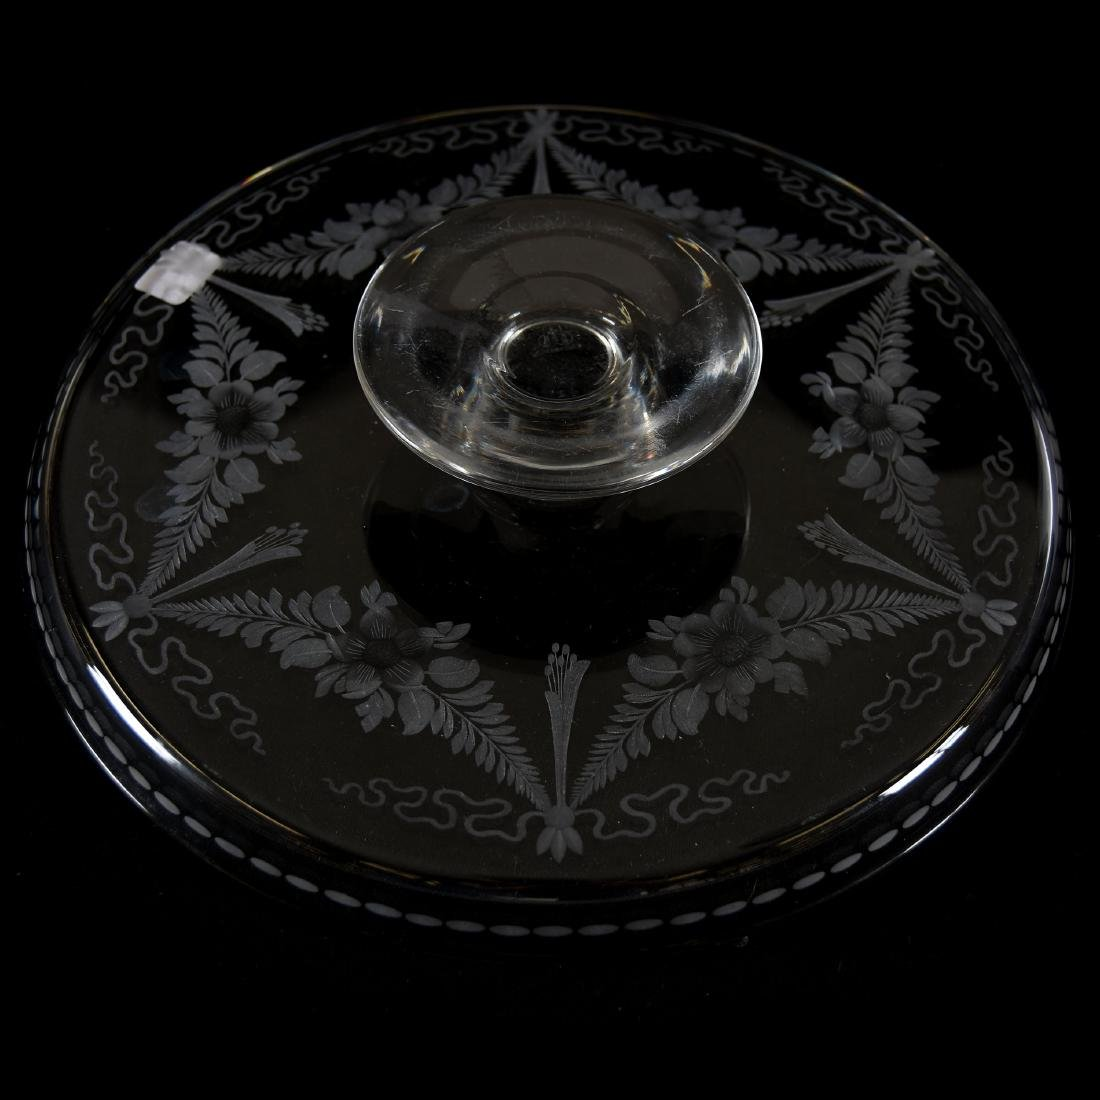 Cake Stand, Signed Hawkes, Engraved Floral Garland - 3